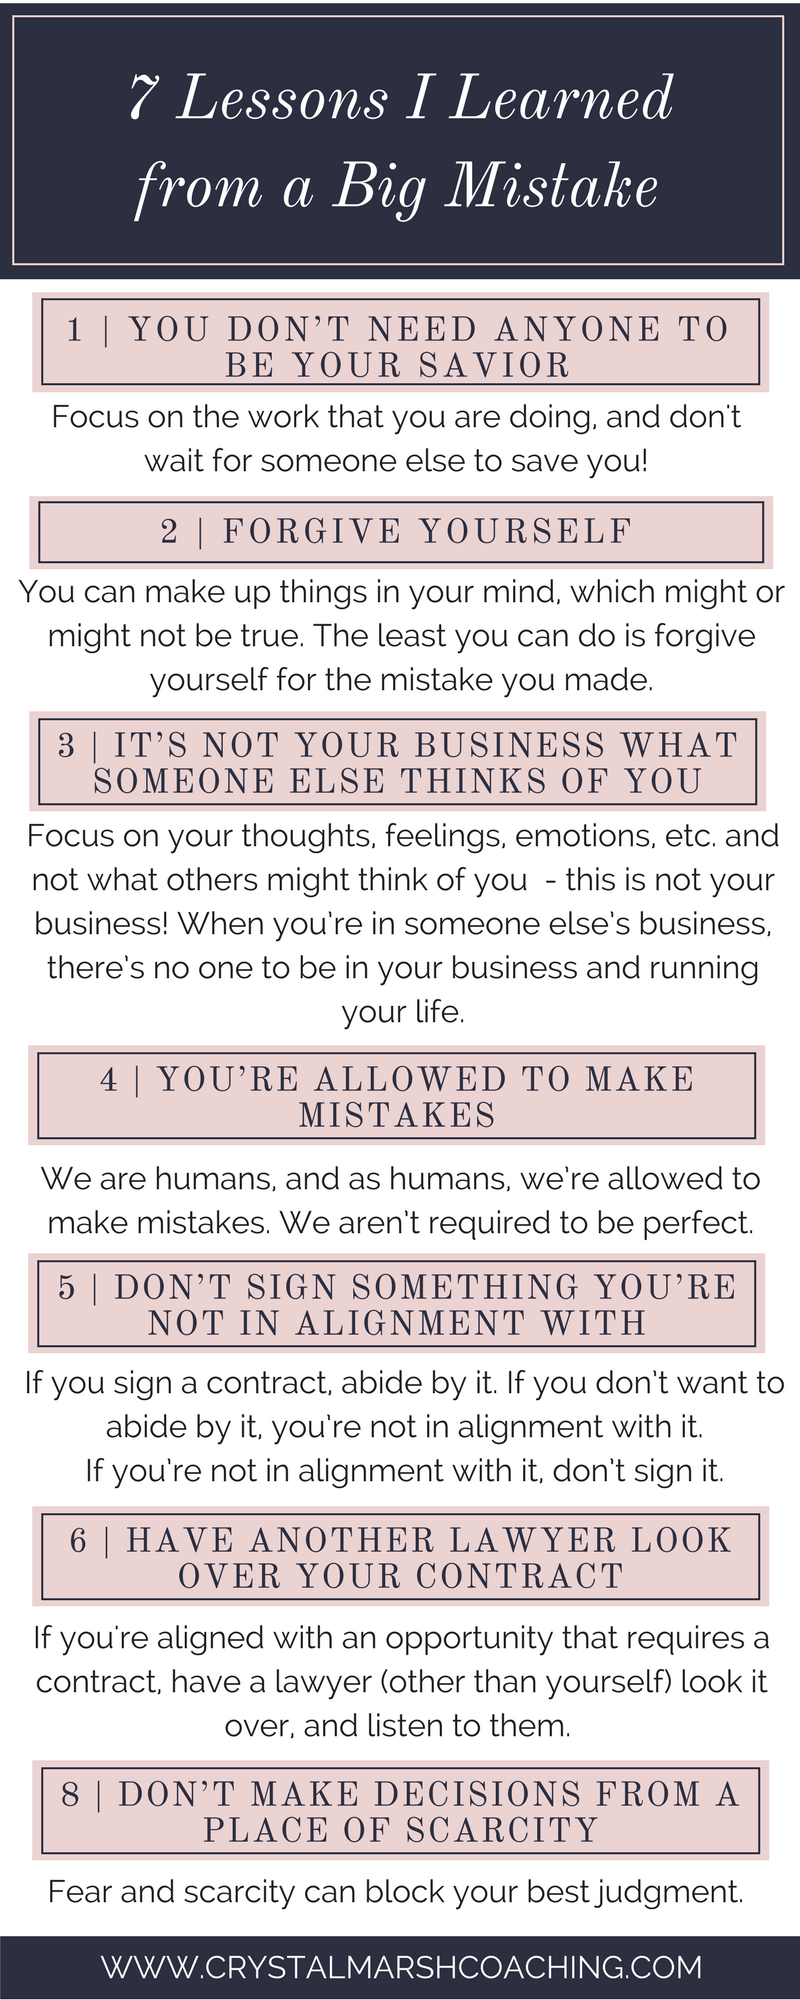 7 Lessons I Learned from a Big Mistake.png